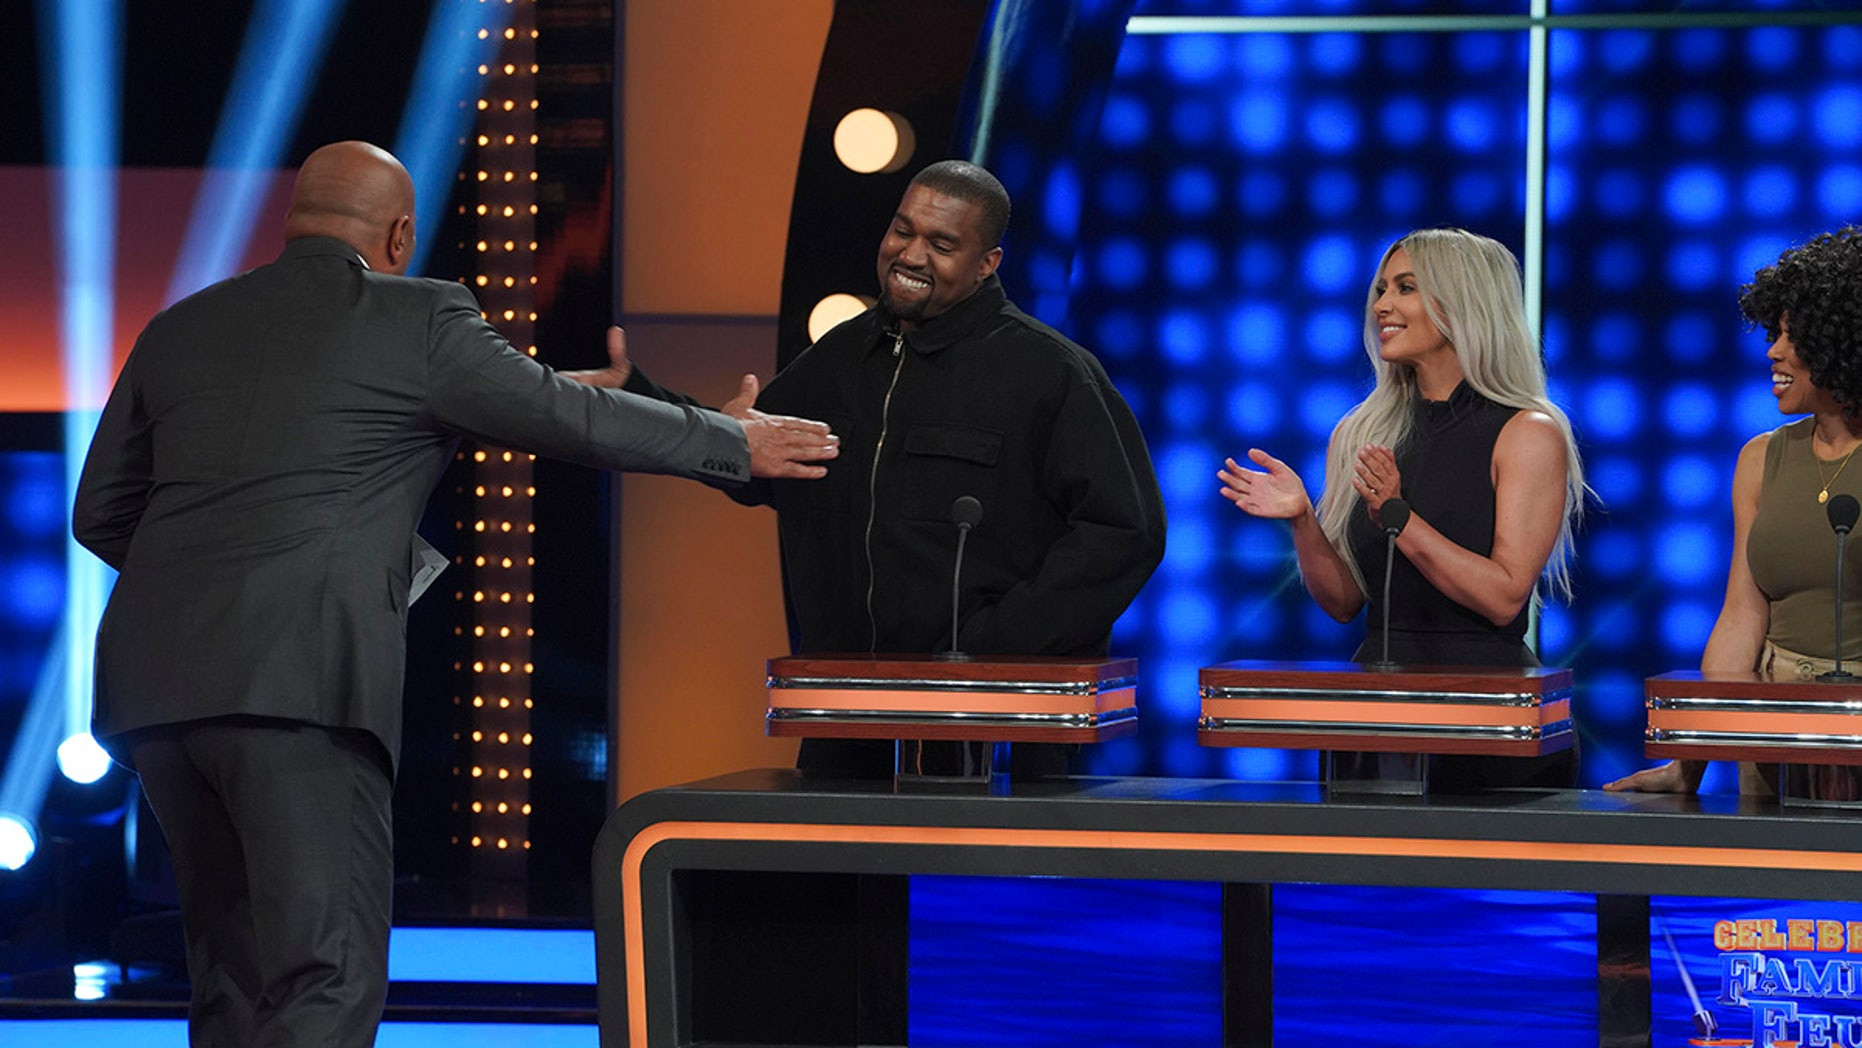 'Celebrity Family Feud' put the Kardashians vs the Wests in its Season premiere.